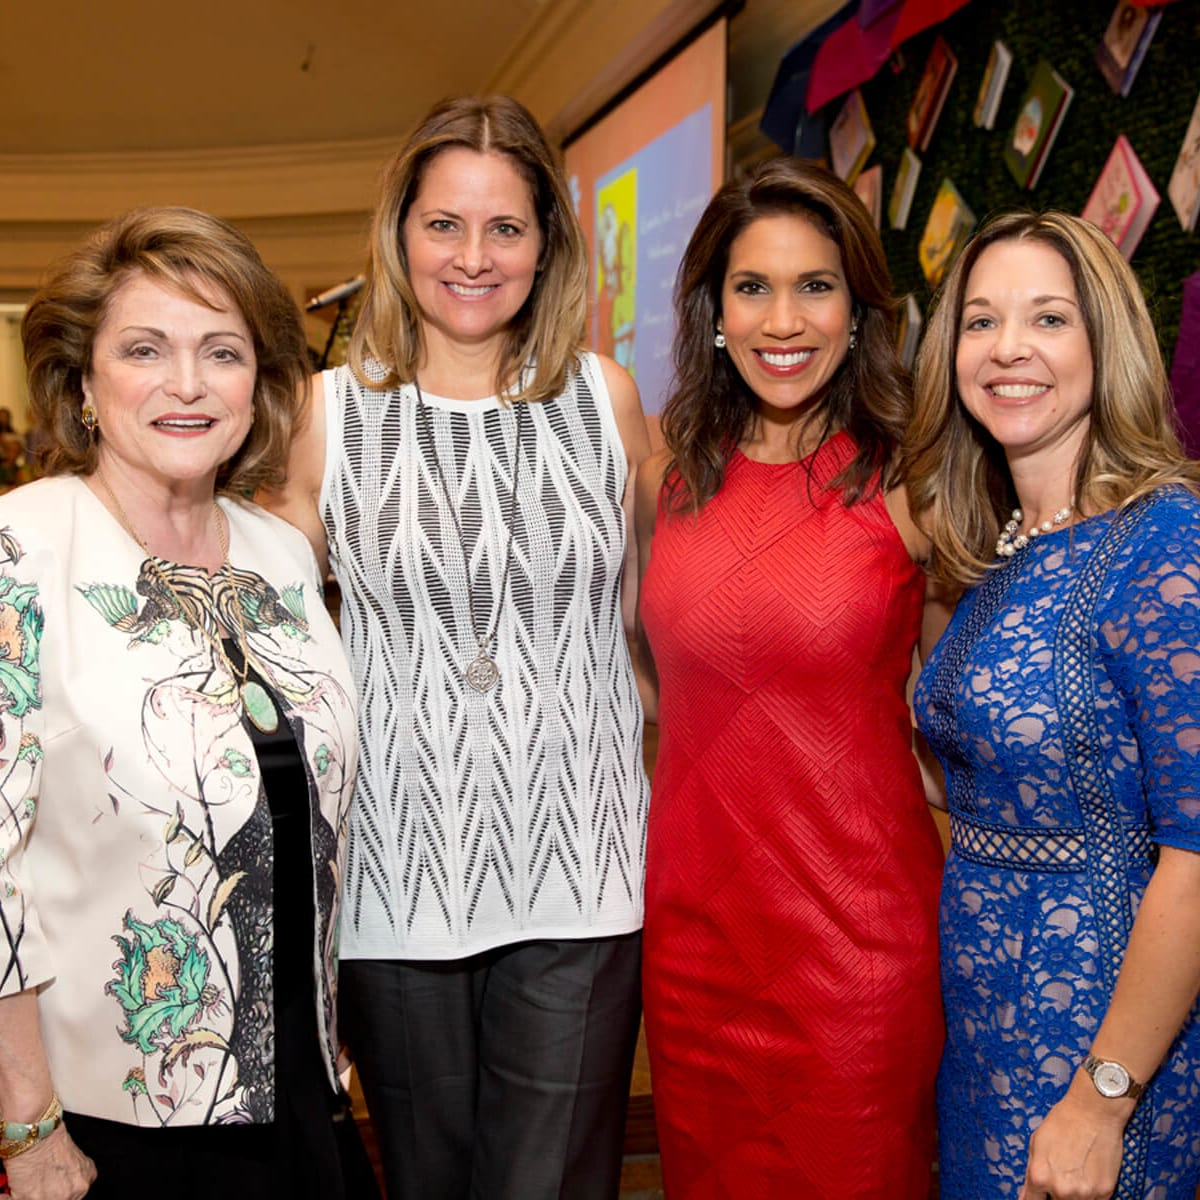 Ladies for Literacy, 9/16, Beth Wolff, Laurel D'Antoni, Rachel McNeill, Julie Baker Finck